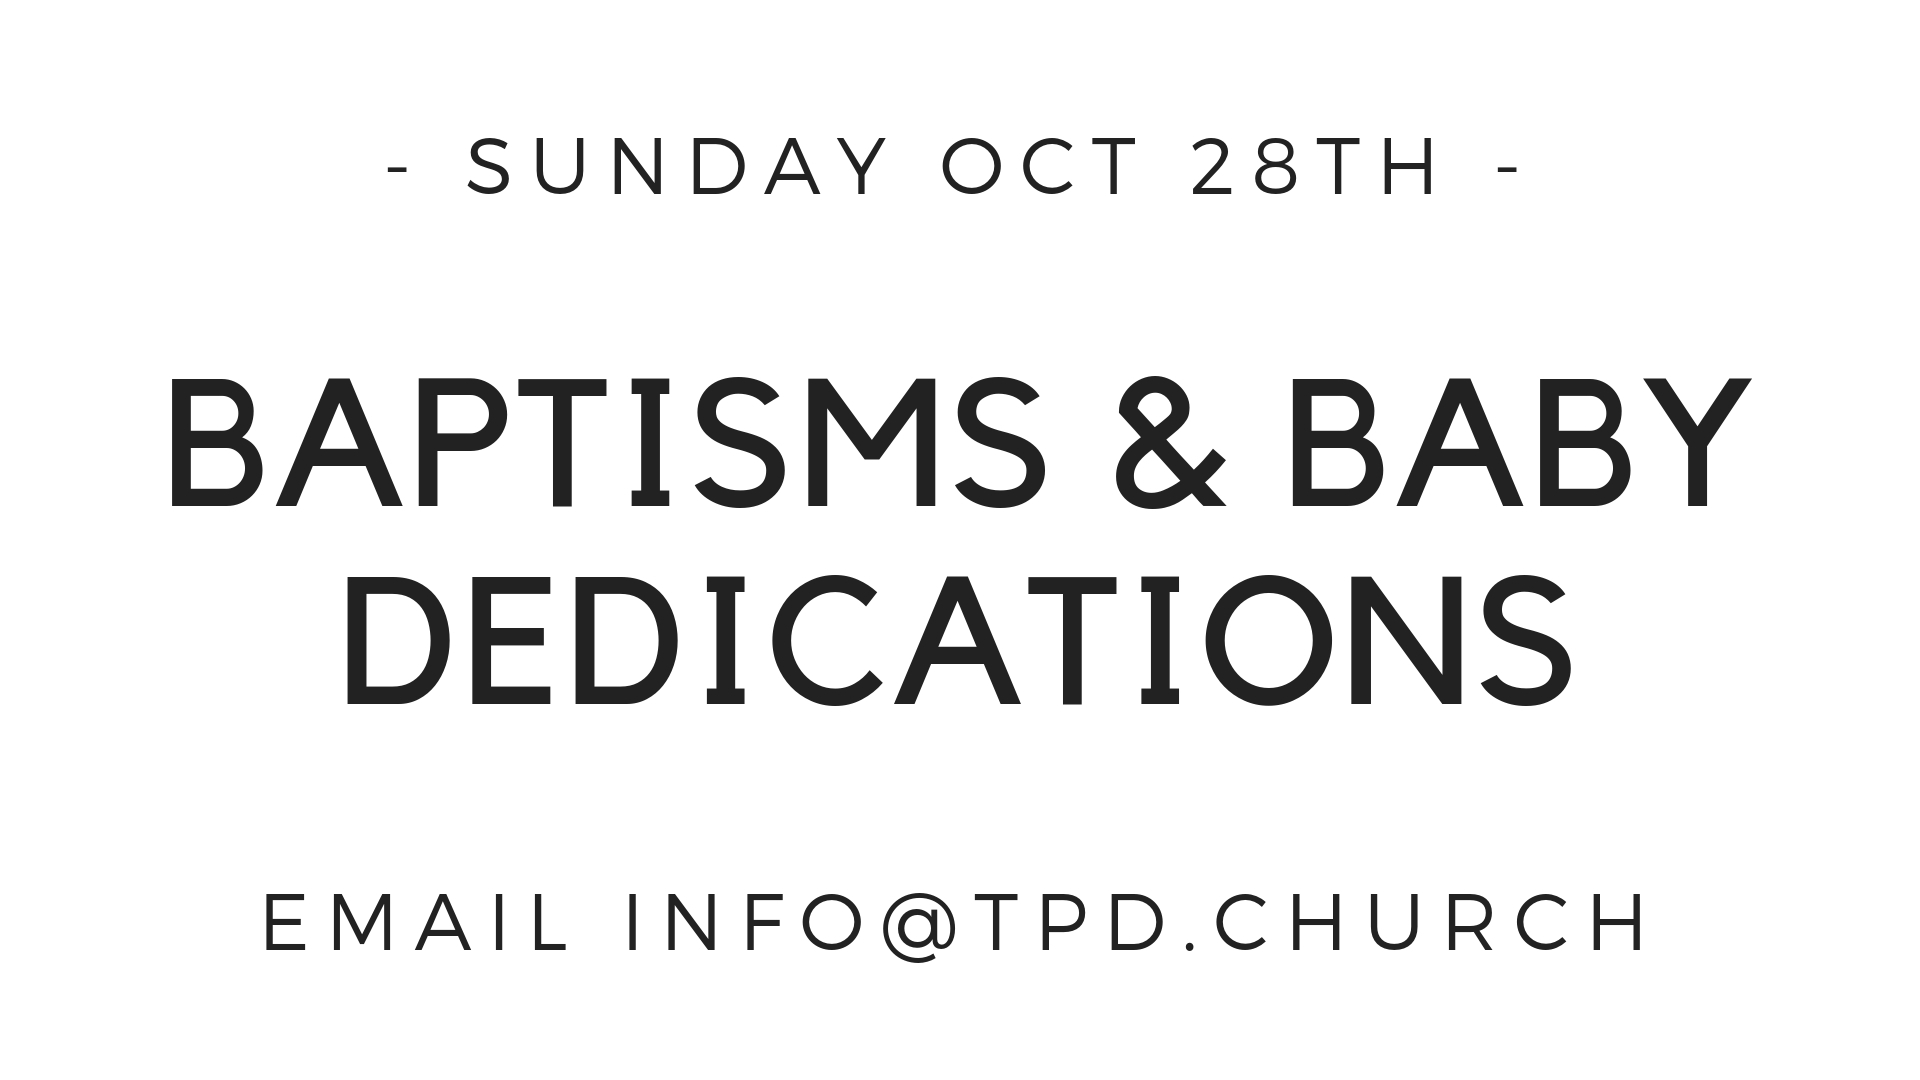 On Sunday Oct. 28, we'll be dedicating more new babies. If you would like to participate, please email mark@tpd.church